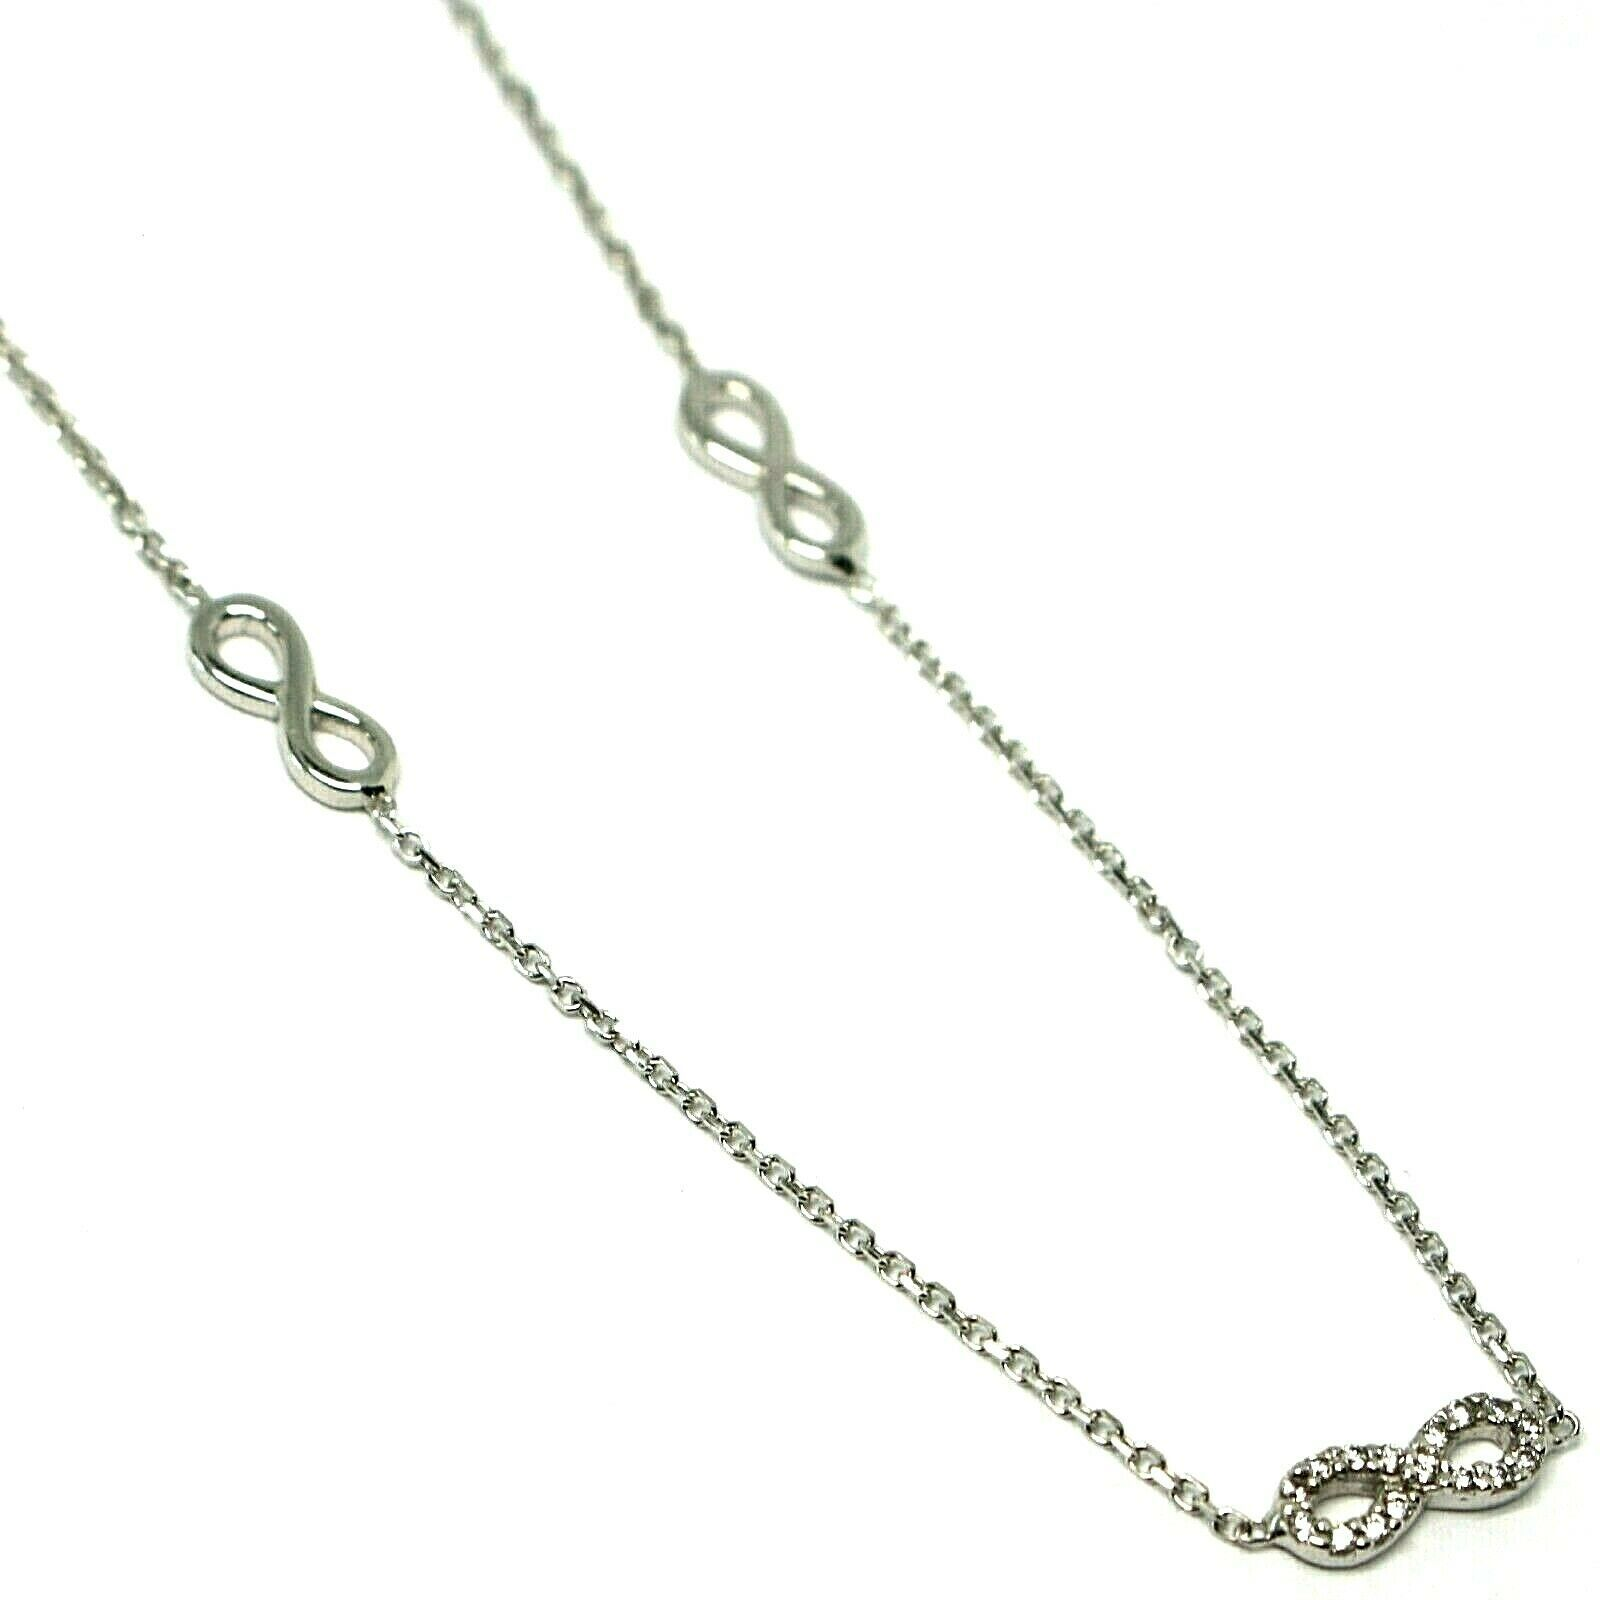 Necklace White Gold 18k 750, Chain Rolo ' , Symbols Infinity, Zircon Cubic image 2